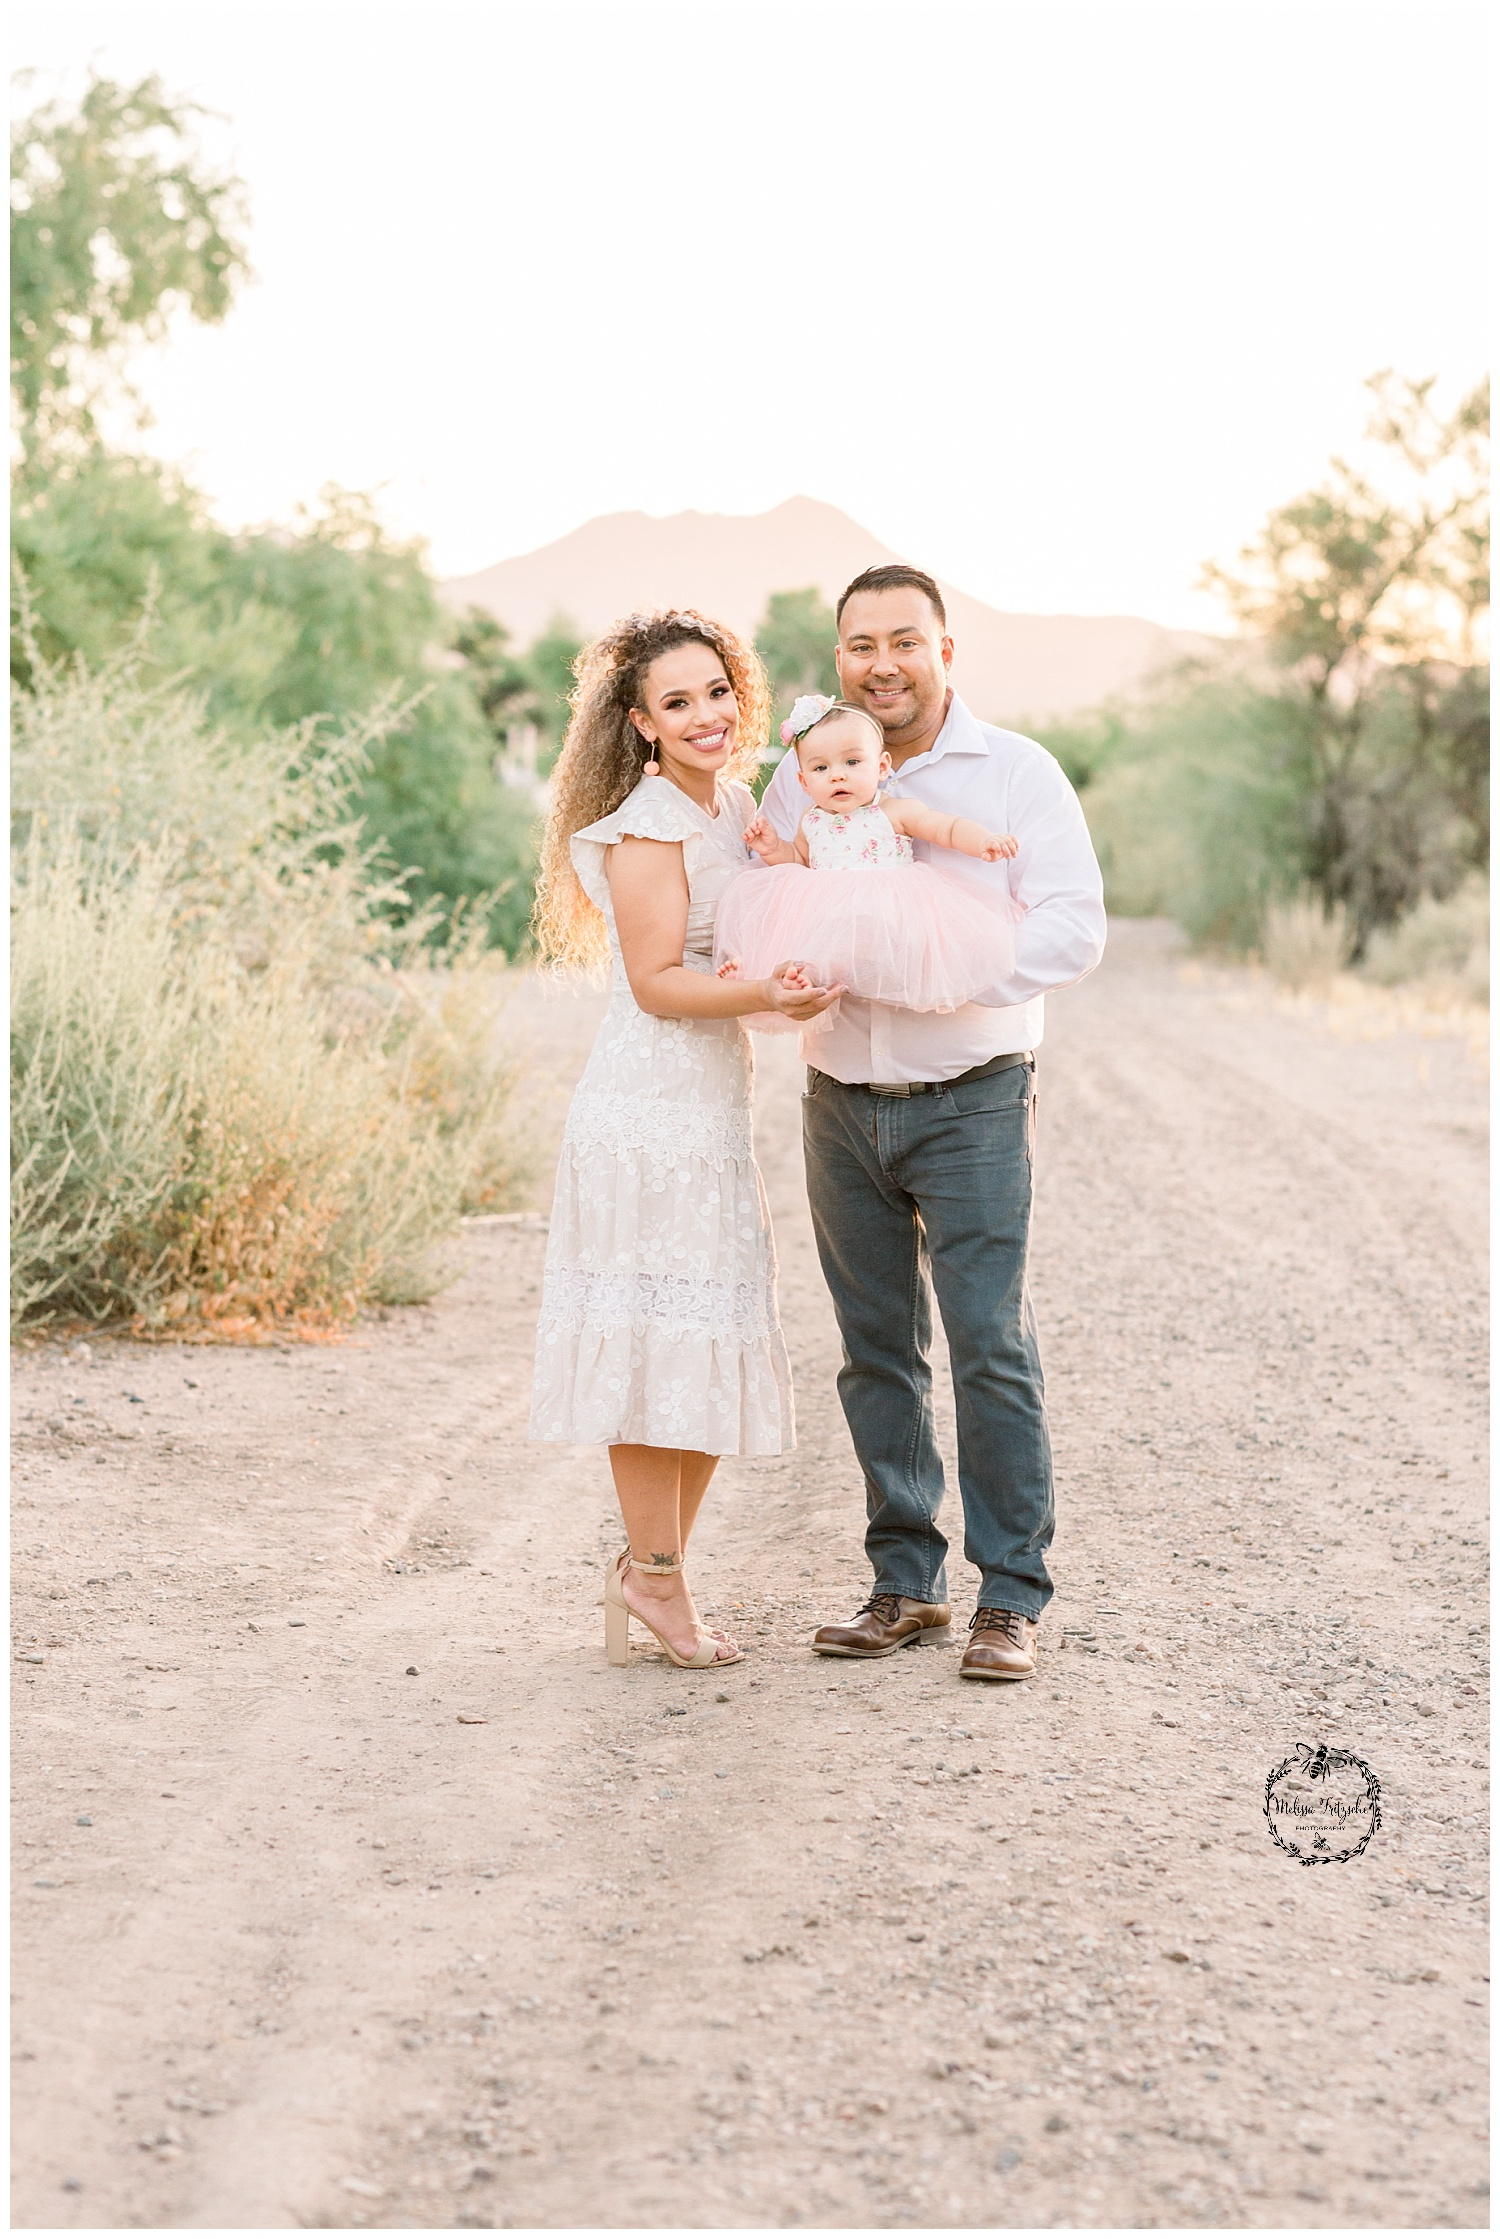 Tucson Family Session- Rodriguez Family_0003.jpg